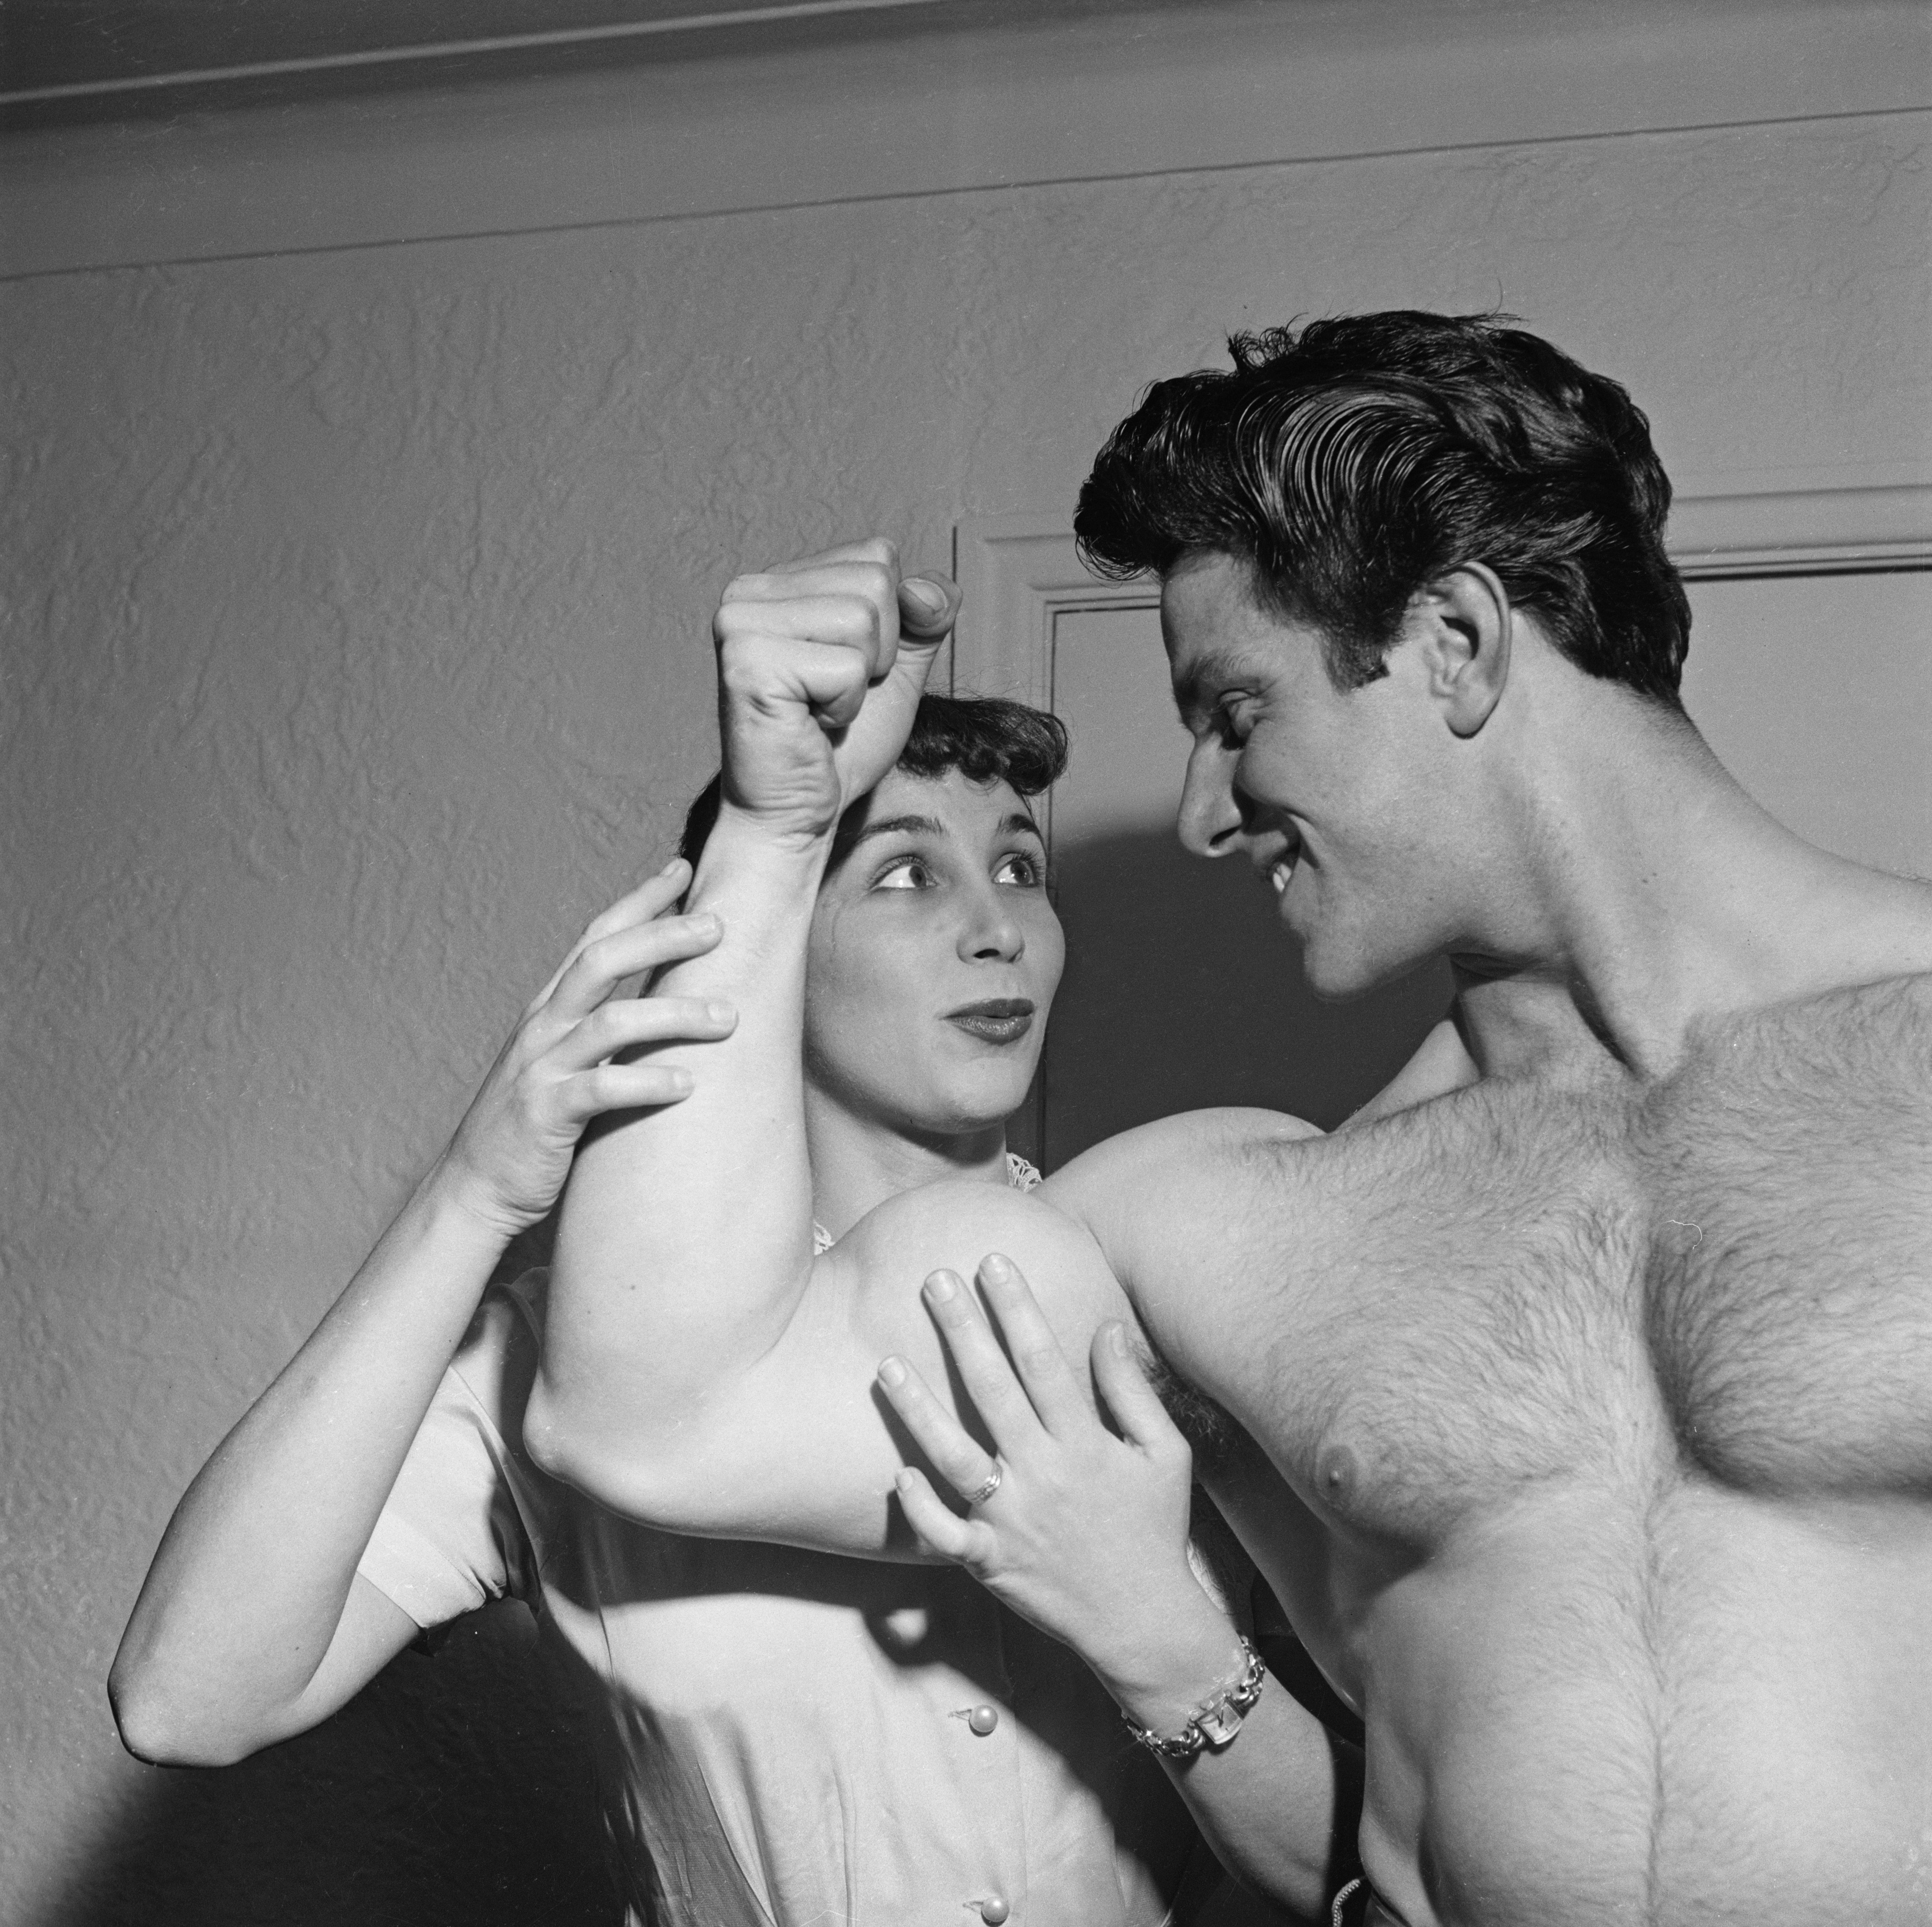 English bodybuilder Reg Park (1928 - 2007) flexes his biceps for the benefit of his wife, South African ballet dancer Mareon Park, circa 1955. Reg Park was the first Englishman to win the Mr Universe title and later went on to act in five Italian Hercules sword-and-sandal films in the early 1960s. Park runs his own businesses, publishing a bodybuilding magazine and supplying weight-training equipment.